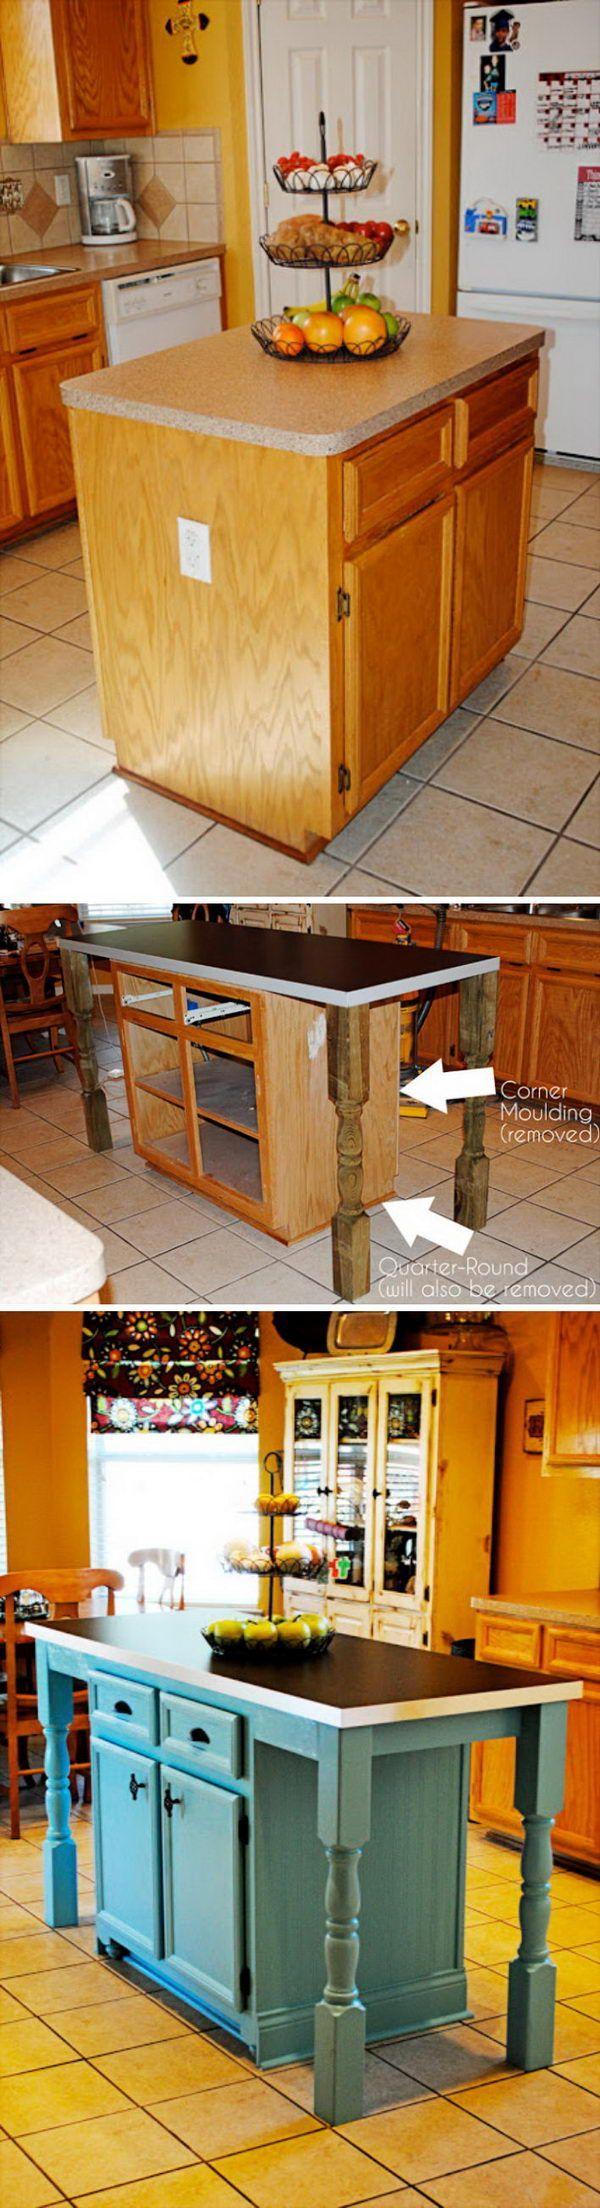 25 best kitchen island makeover ideas on pinterest peninsula 25 best kitchen island makeover ideas on pinterest peninsula kitchen diy painting cabinets and builder grade updates